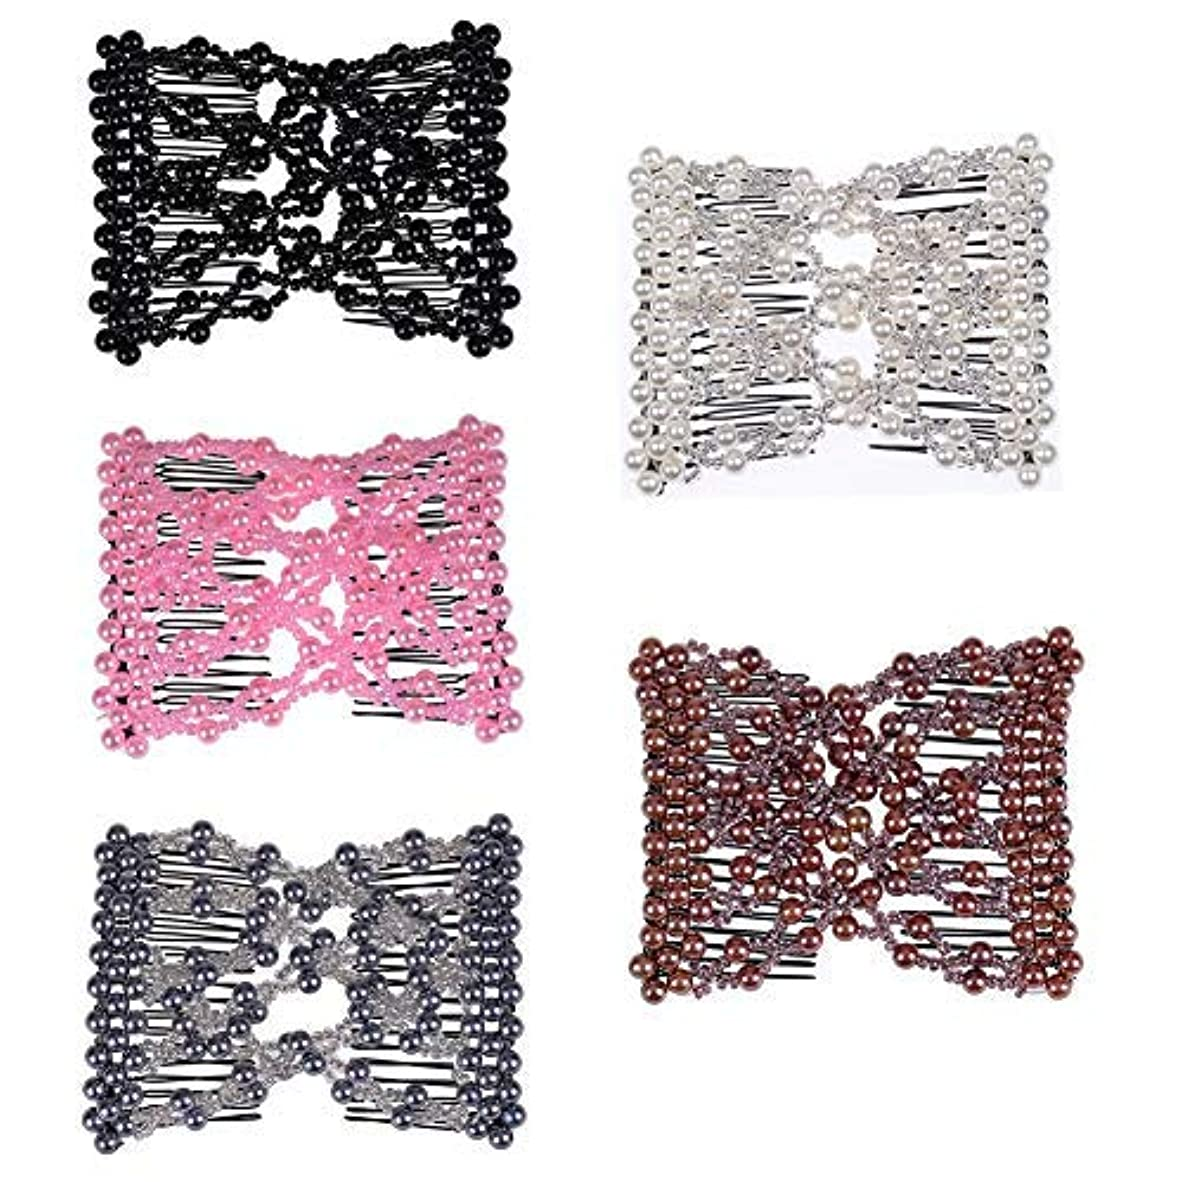 Casualfashion 5Pcs Ez Stretch Beaded Hair Combs Double Magic Slide Metal Comb Clip Hairpins for Women Hair Styling...